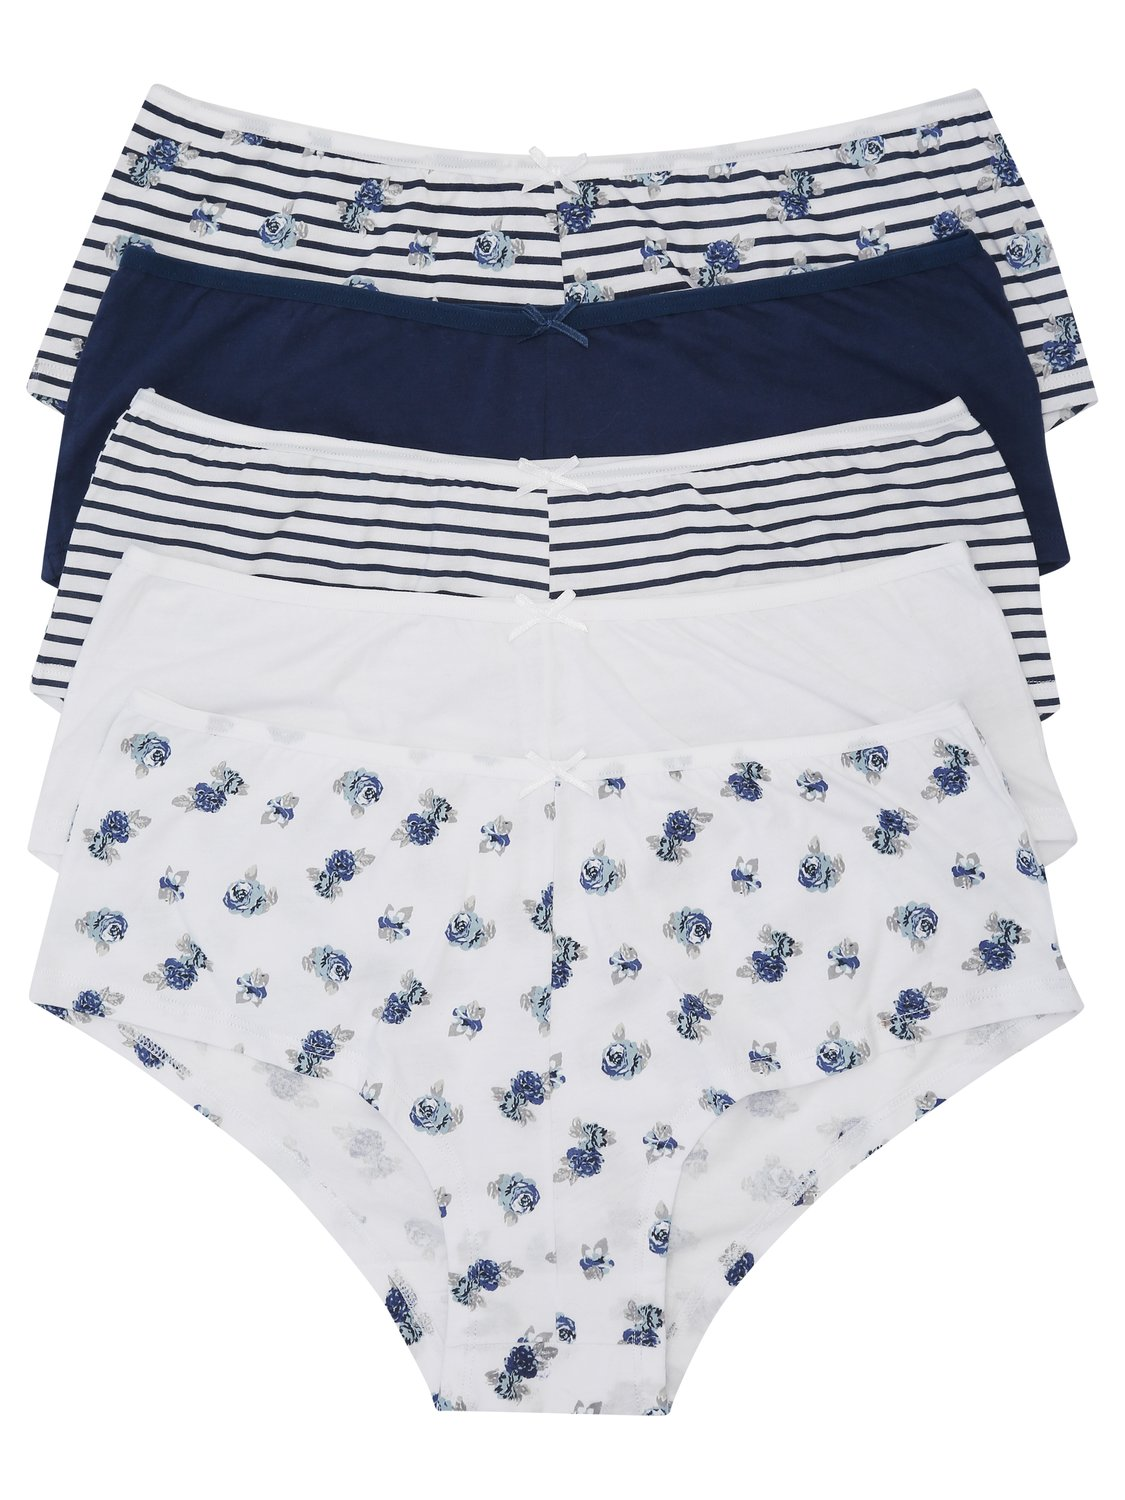 ladies boxer briefs multipack floral and stripe print boxer briefs multipack  - petrol blue